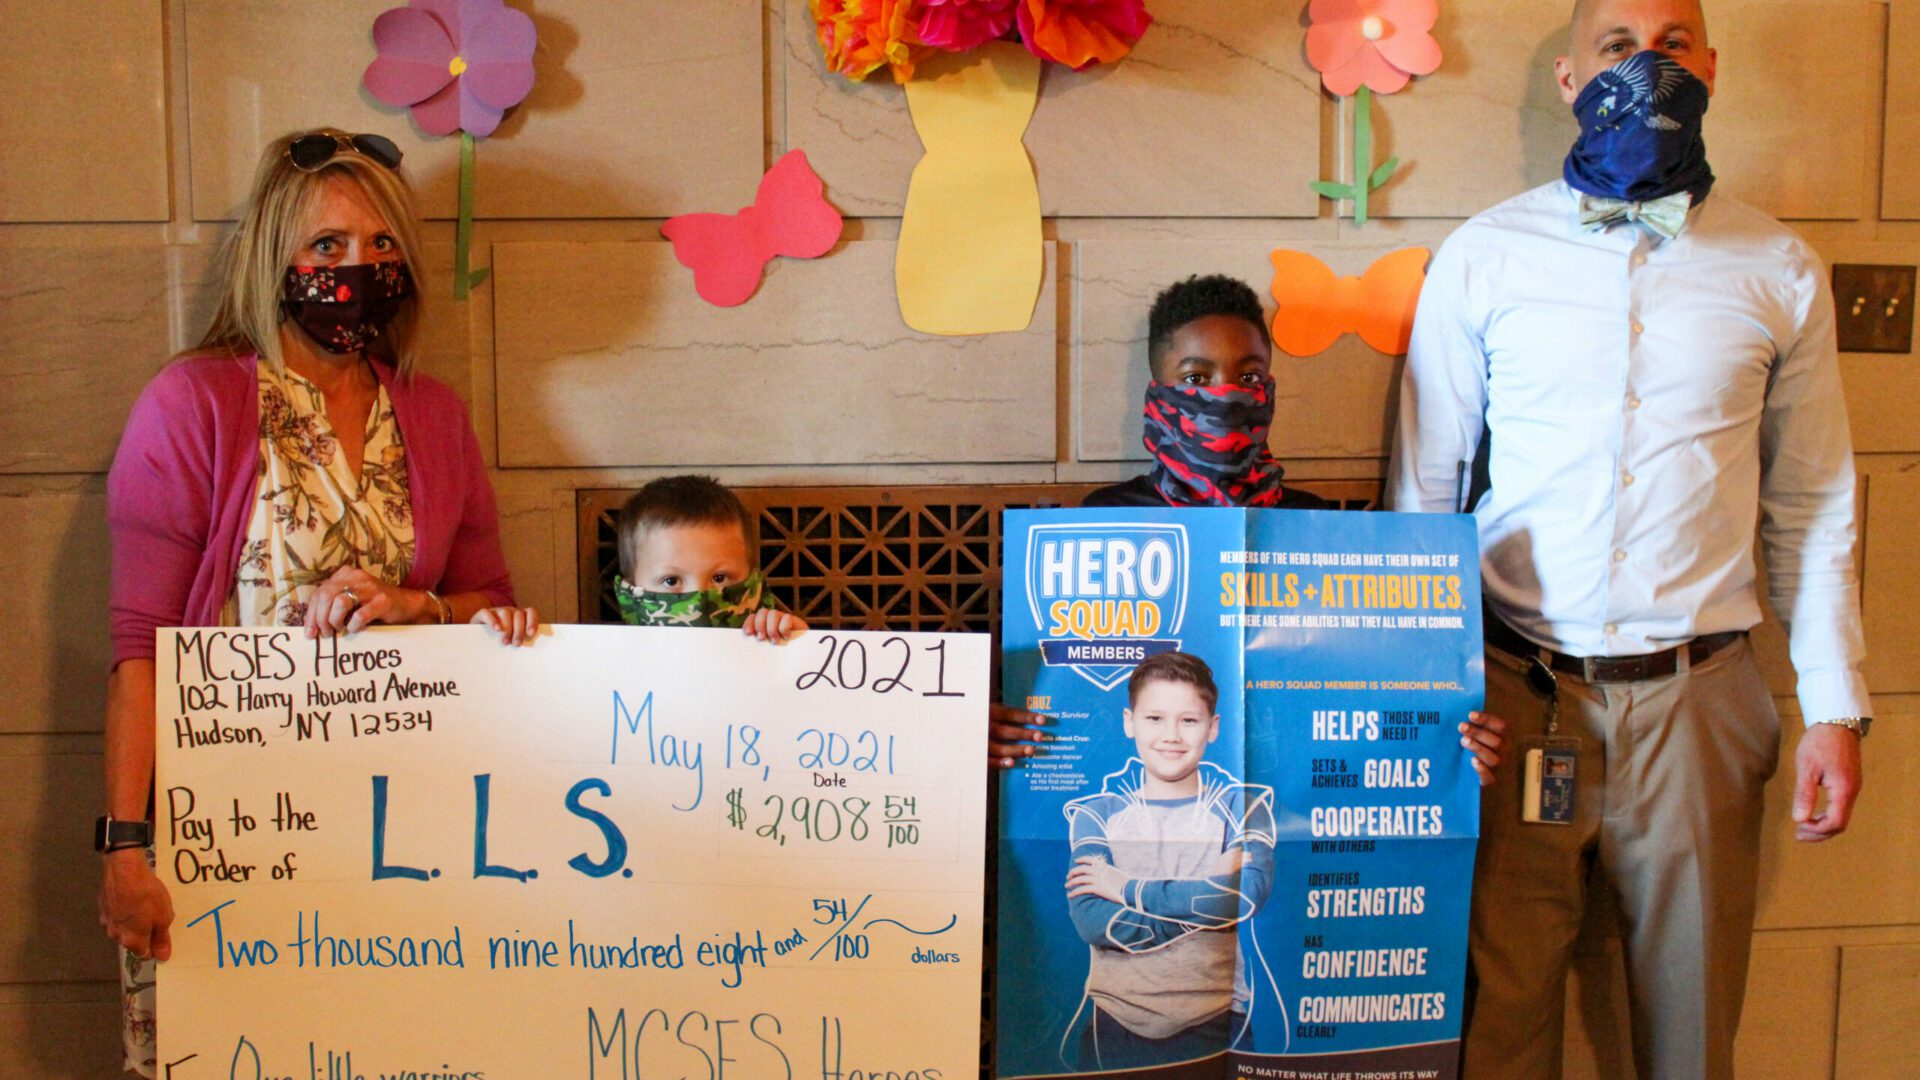 two elementary boys standing between adults and holding a big check totaling $2,908